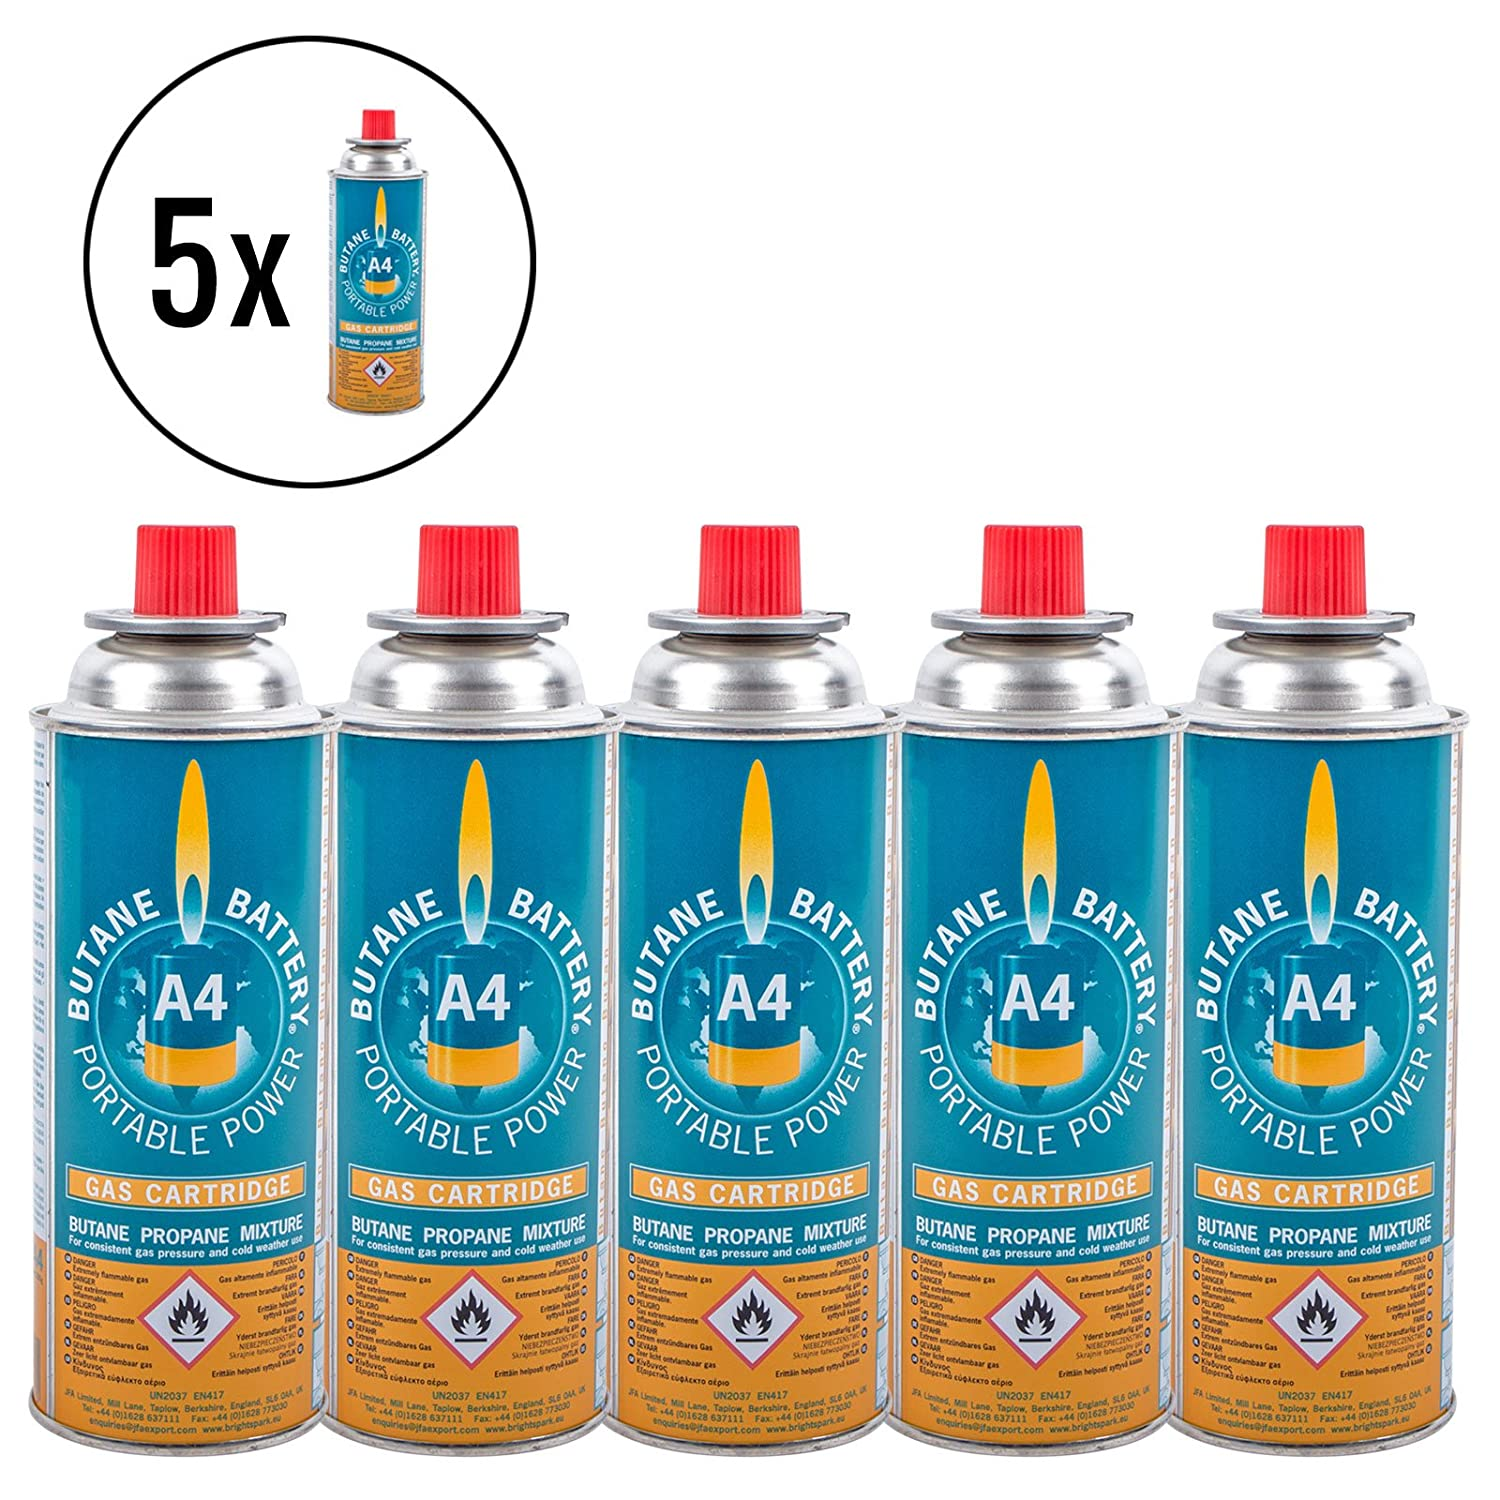 5x gas cartridge Butan-Battery 220 grams for camping carcass cookers and grills. JFA Limited